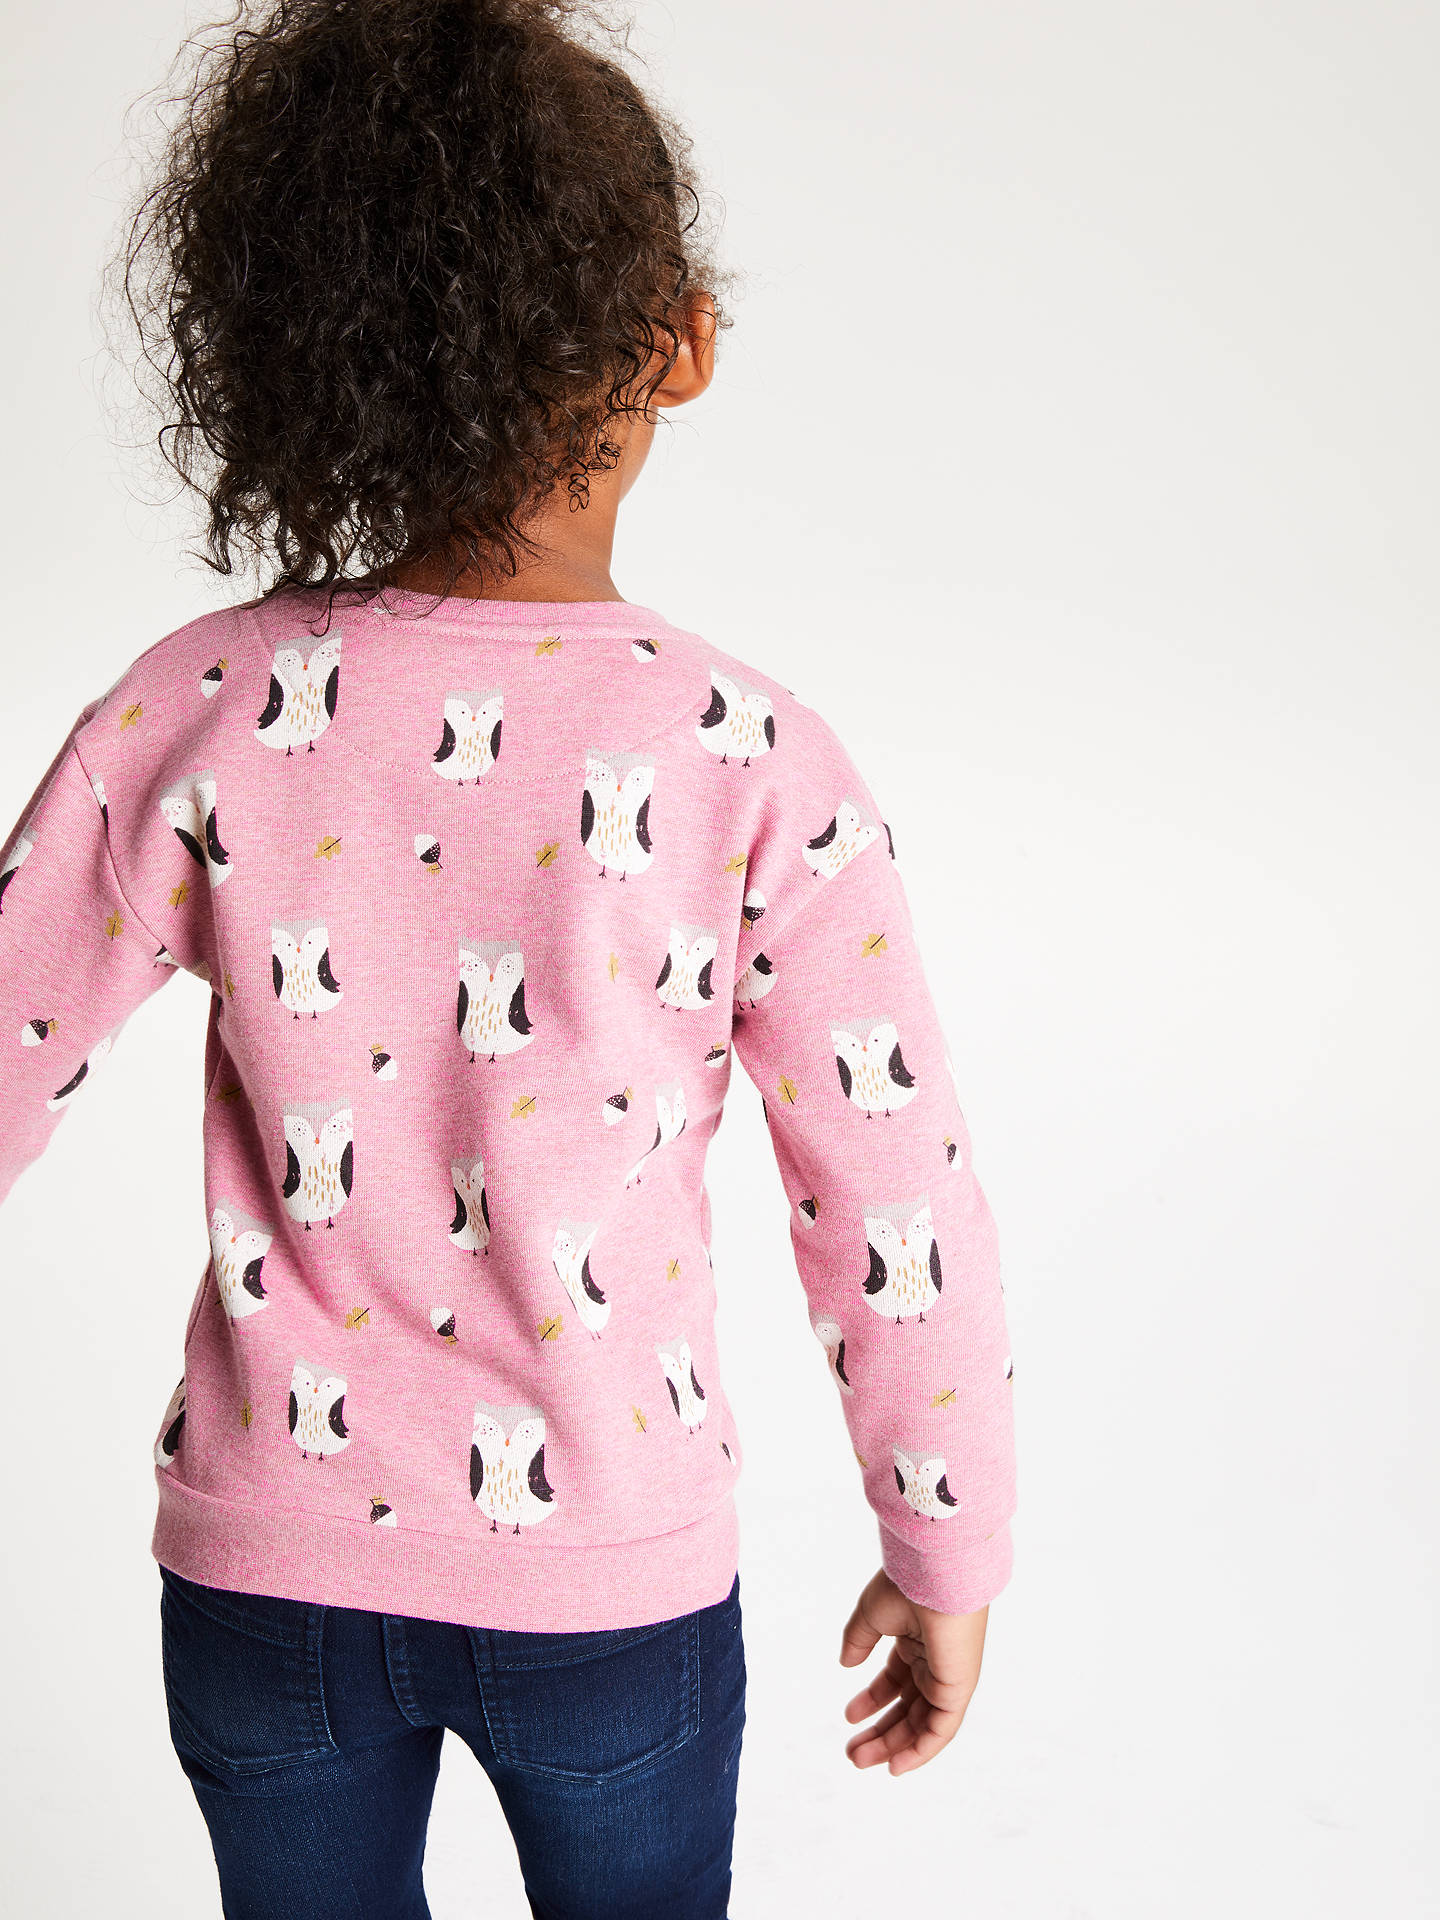 Buy John Lewis & Partners Girls' Owl Sweatshirt, Pink, 4 years Online at johnlewis.com